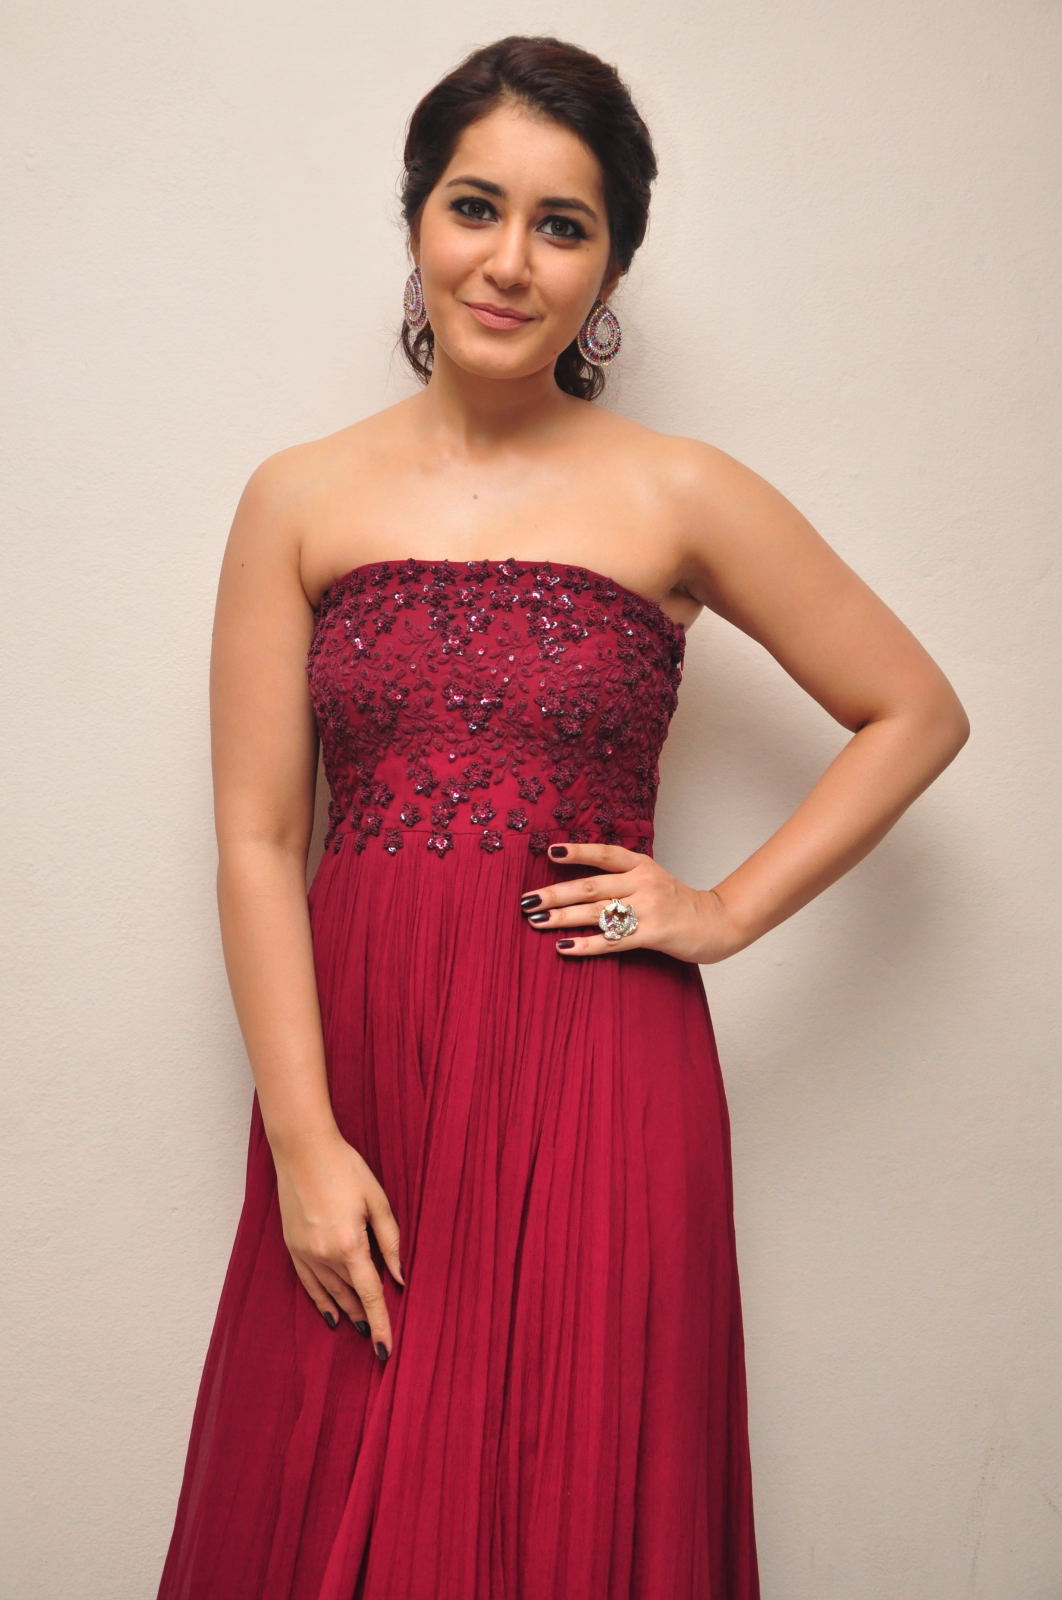 Rashi Khanna Photos In Maroon Top